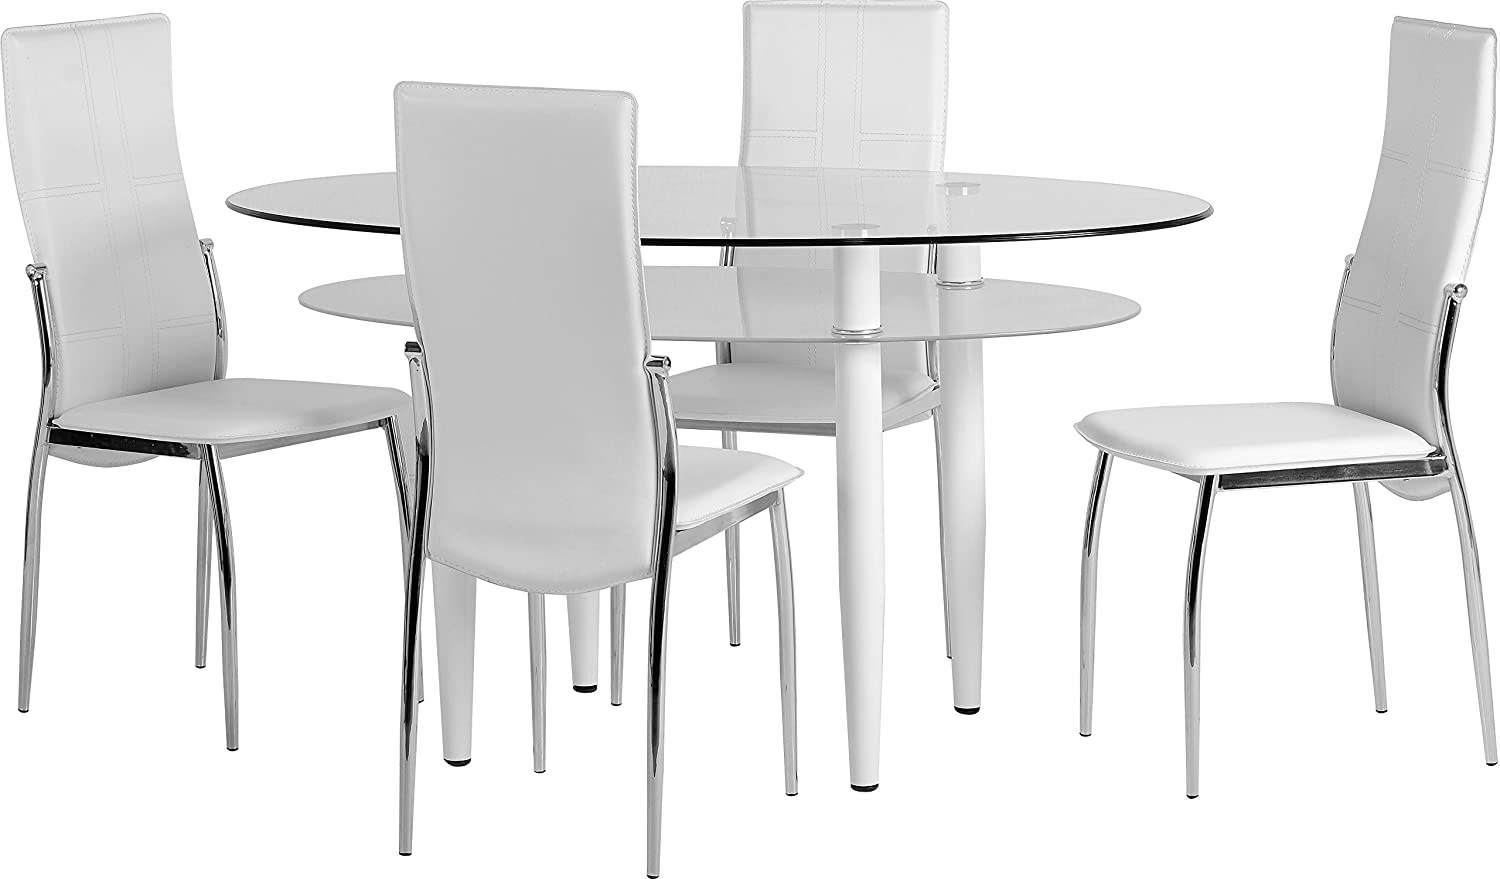 Seconique Berkley Dining Set, Clear Glass/Frosted Glass/White/White Faux Leather/Chrome, 829.95 x 1439.95 x 39.95 cm